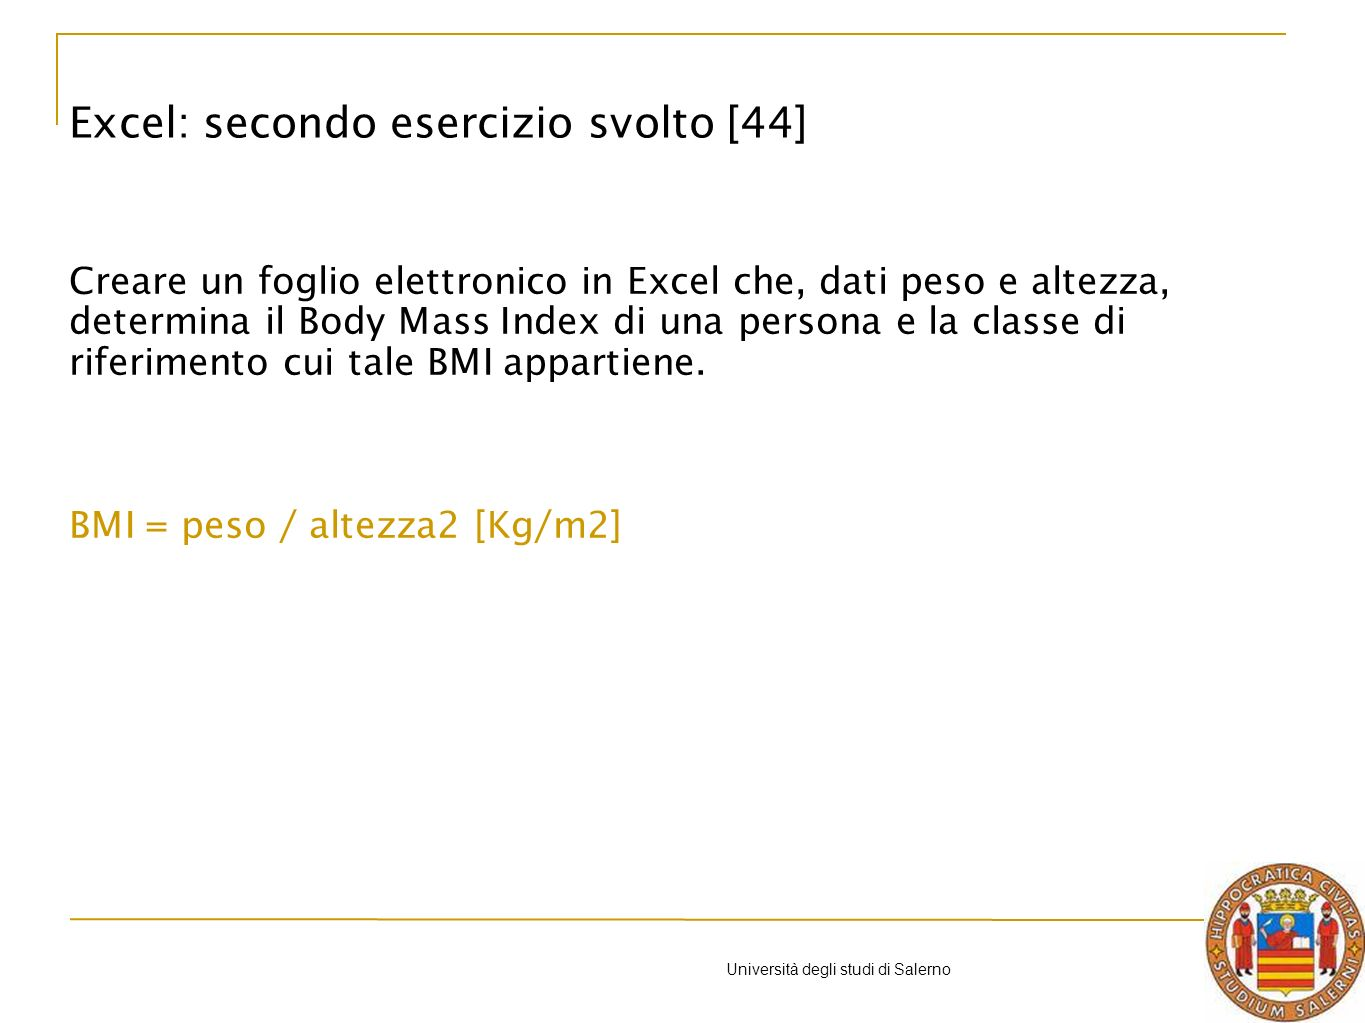 Università degli studi di Salerno Creare un foglio elettronico in Excel che, dati peso e altezza, determina il Body Mass Index di una persona e la classe di riferimento cui tale BMI appartiene.